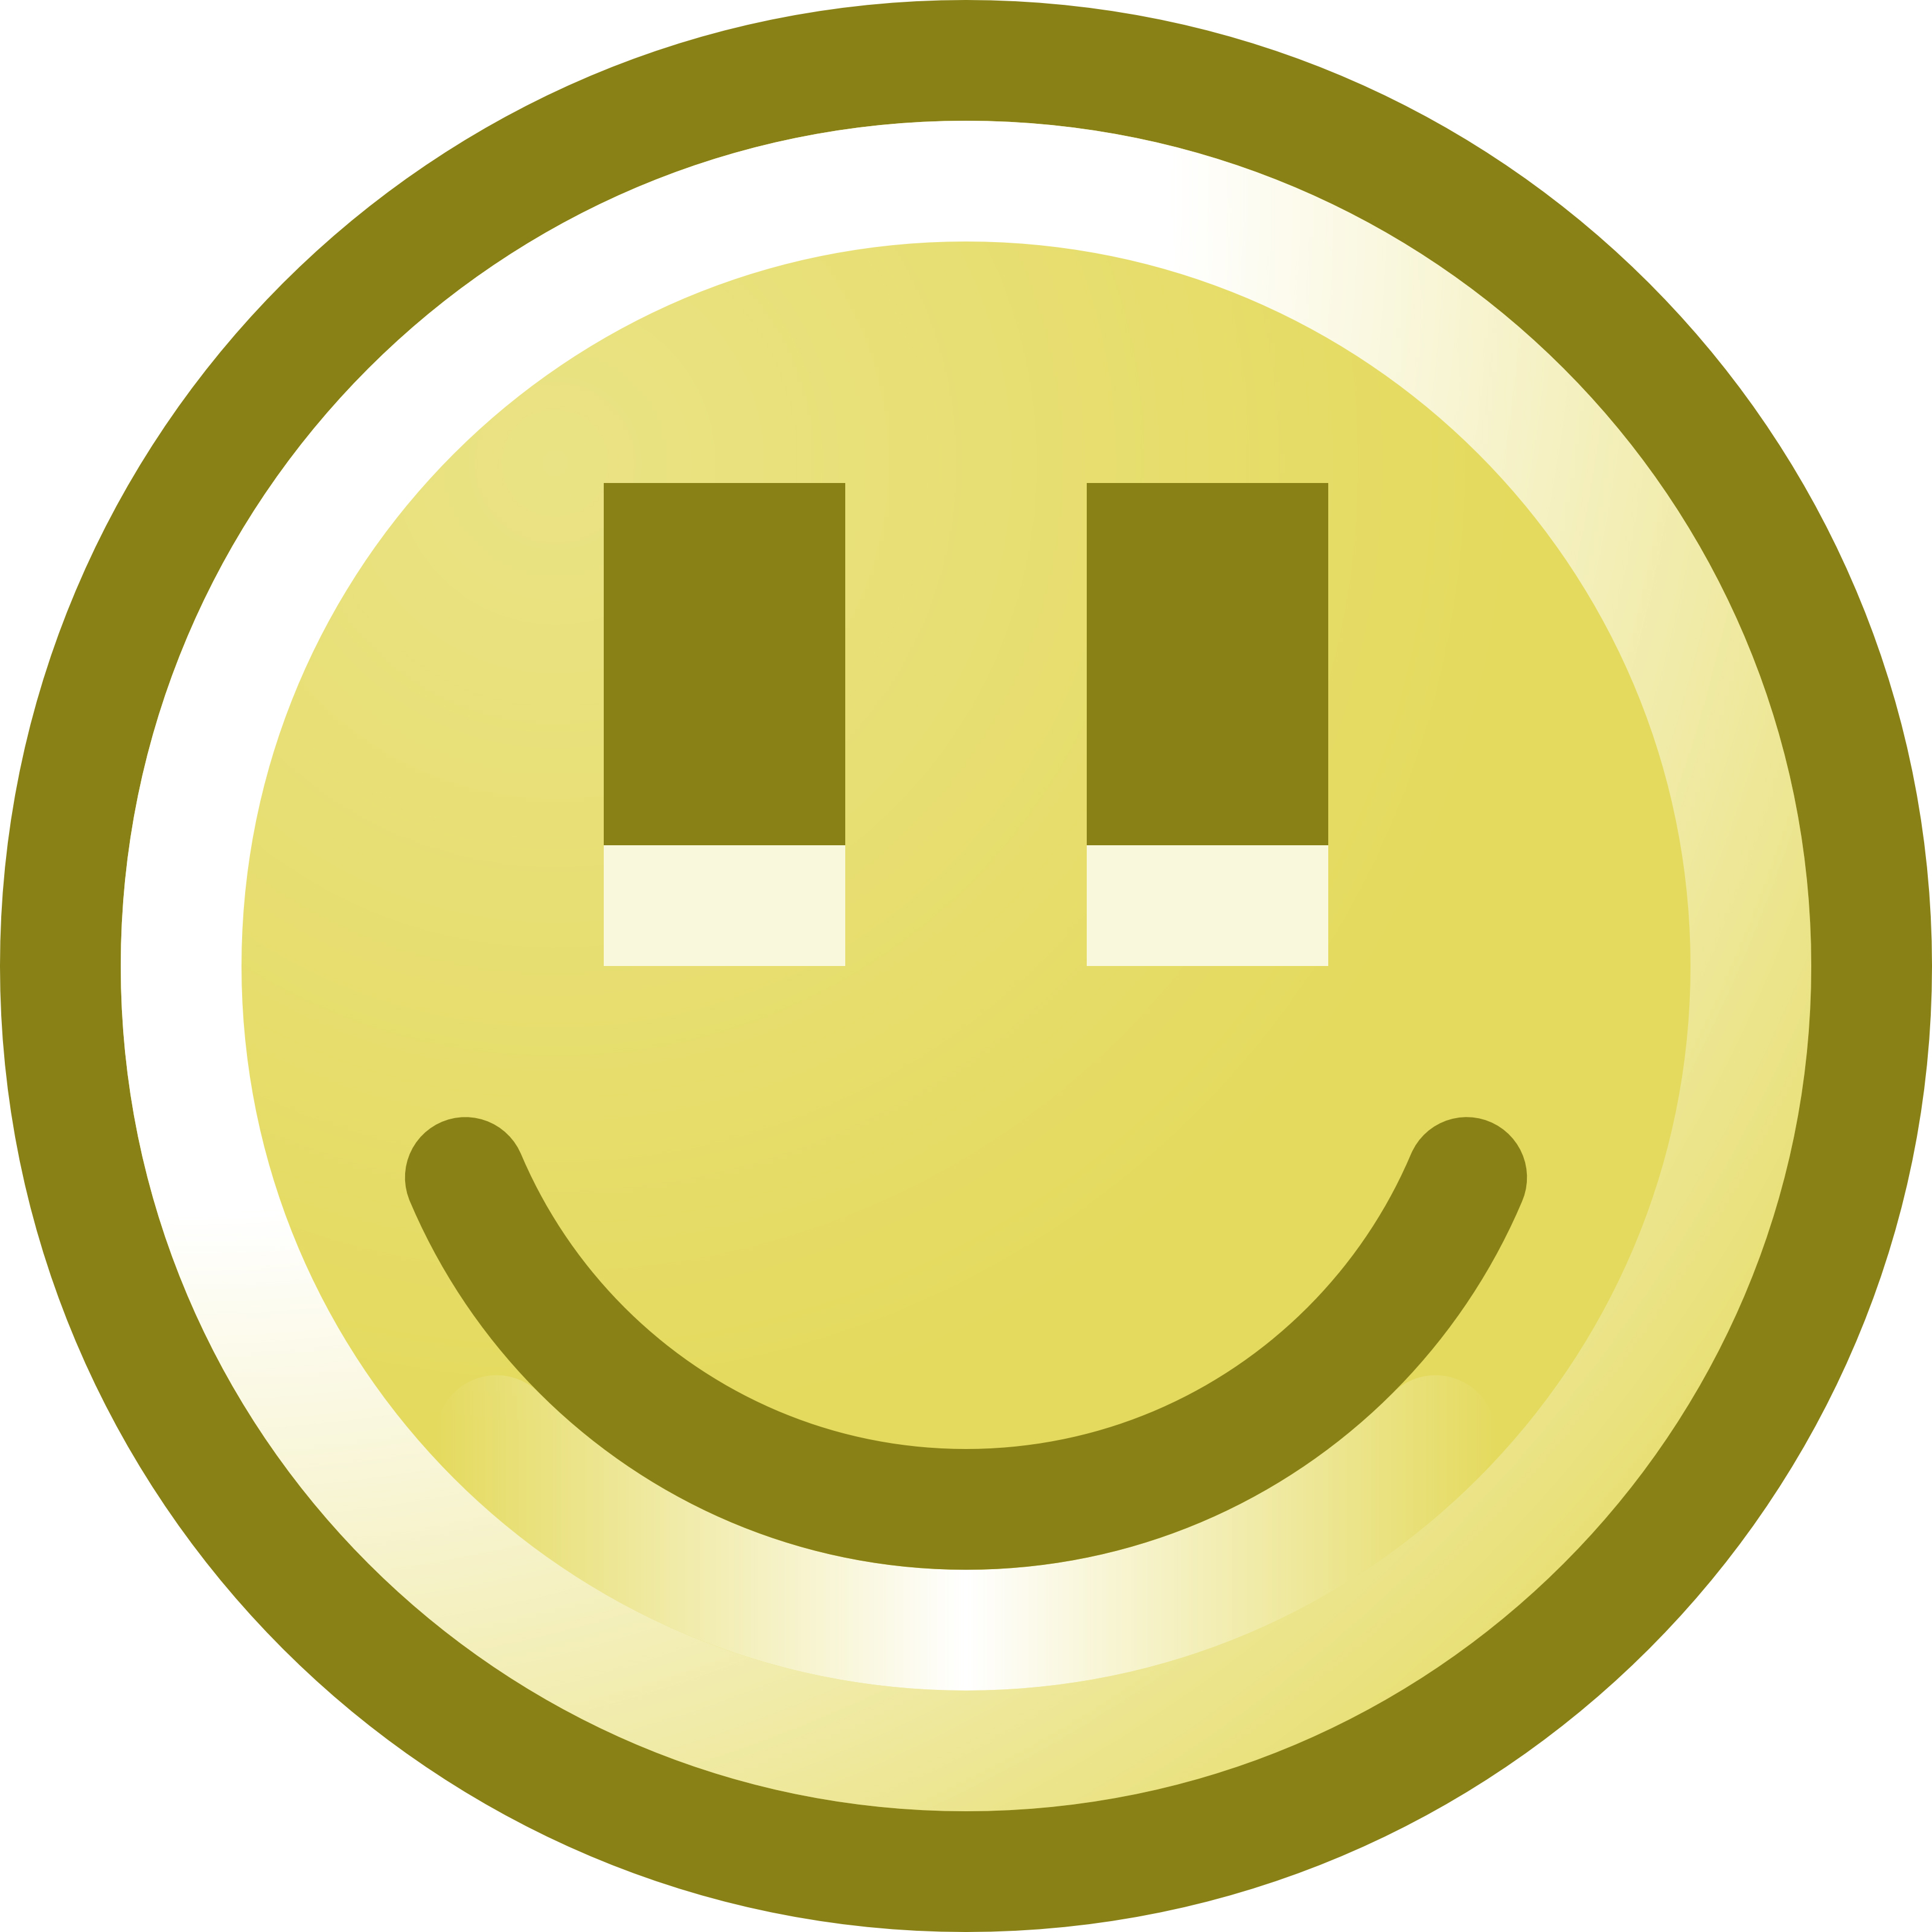 3200x3200 Free Smiling Smiley Face Clip Art Illustration